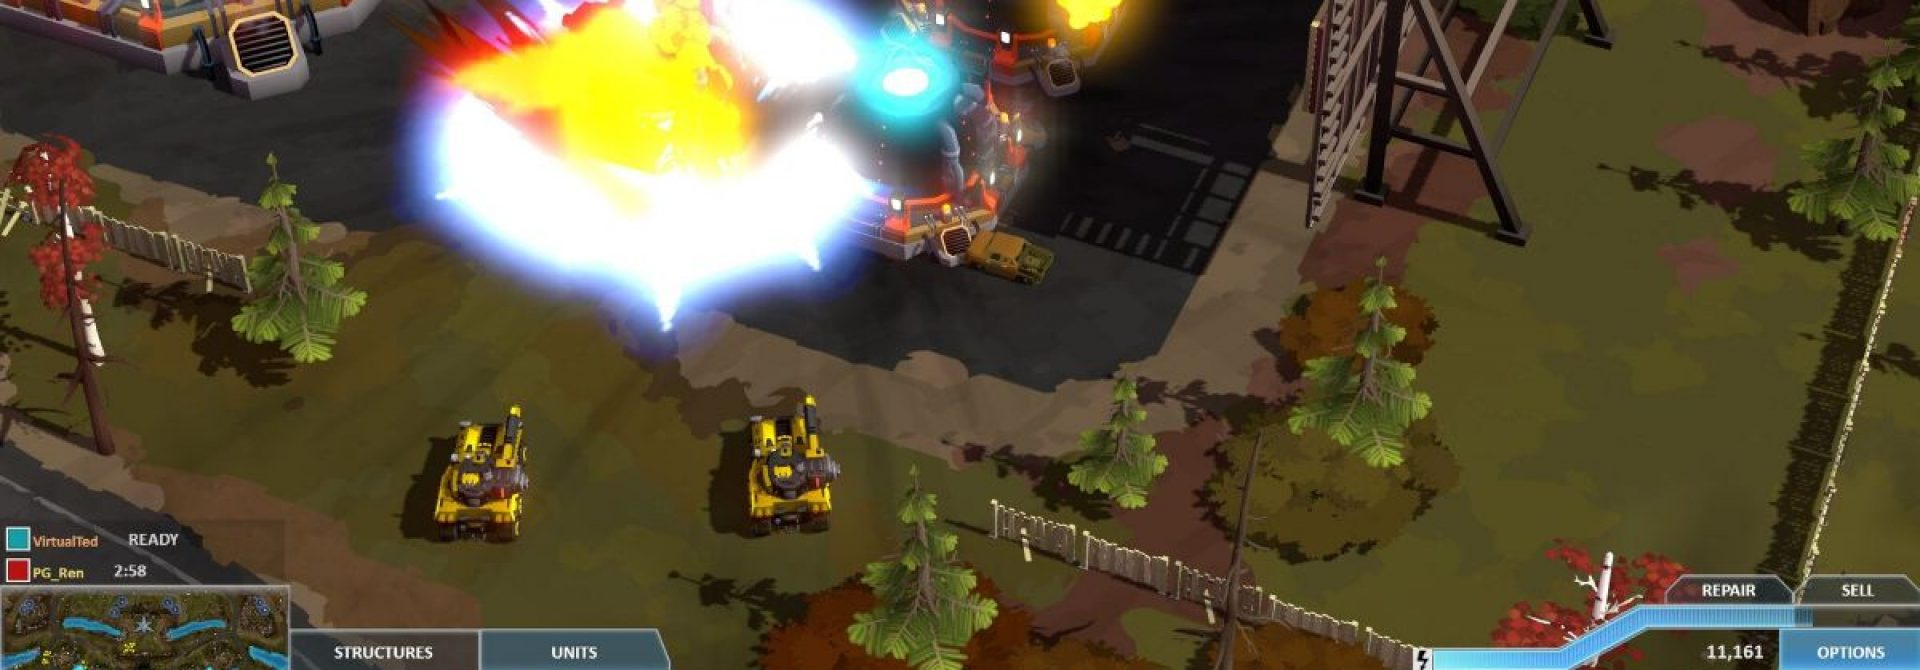 Forged Battalion Available Now On Steam